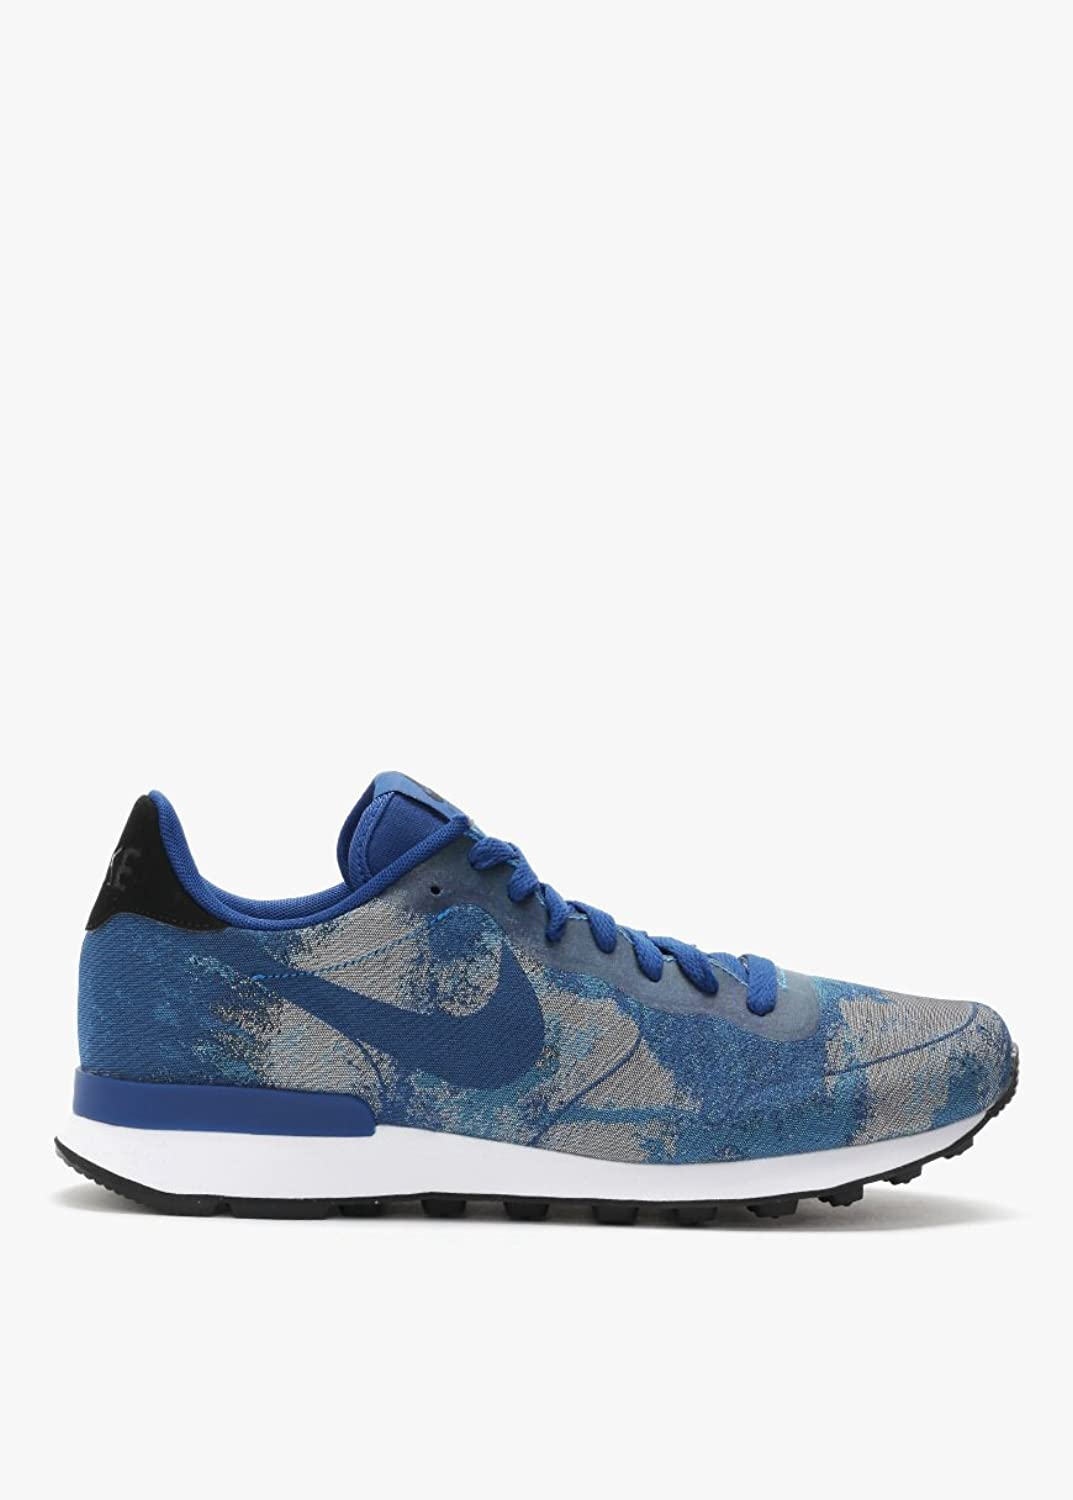 Nike Internationalist JCRD Mens Trainers 725063 Sneakers shoes